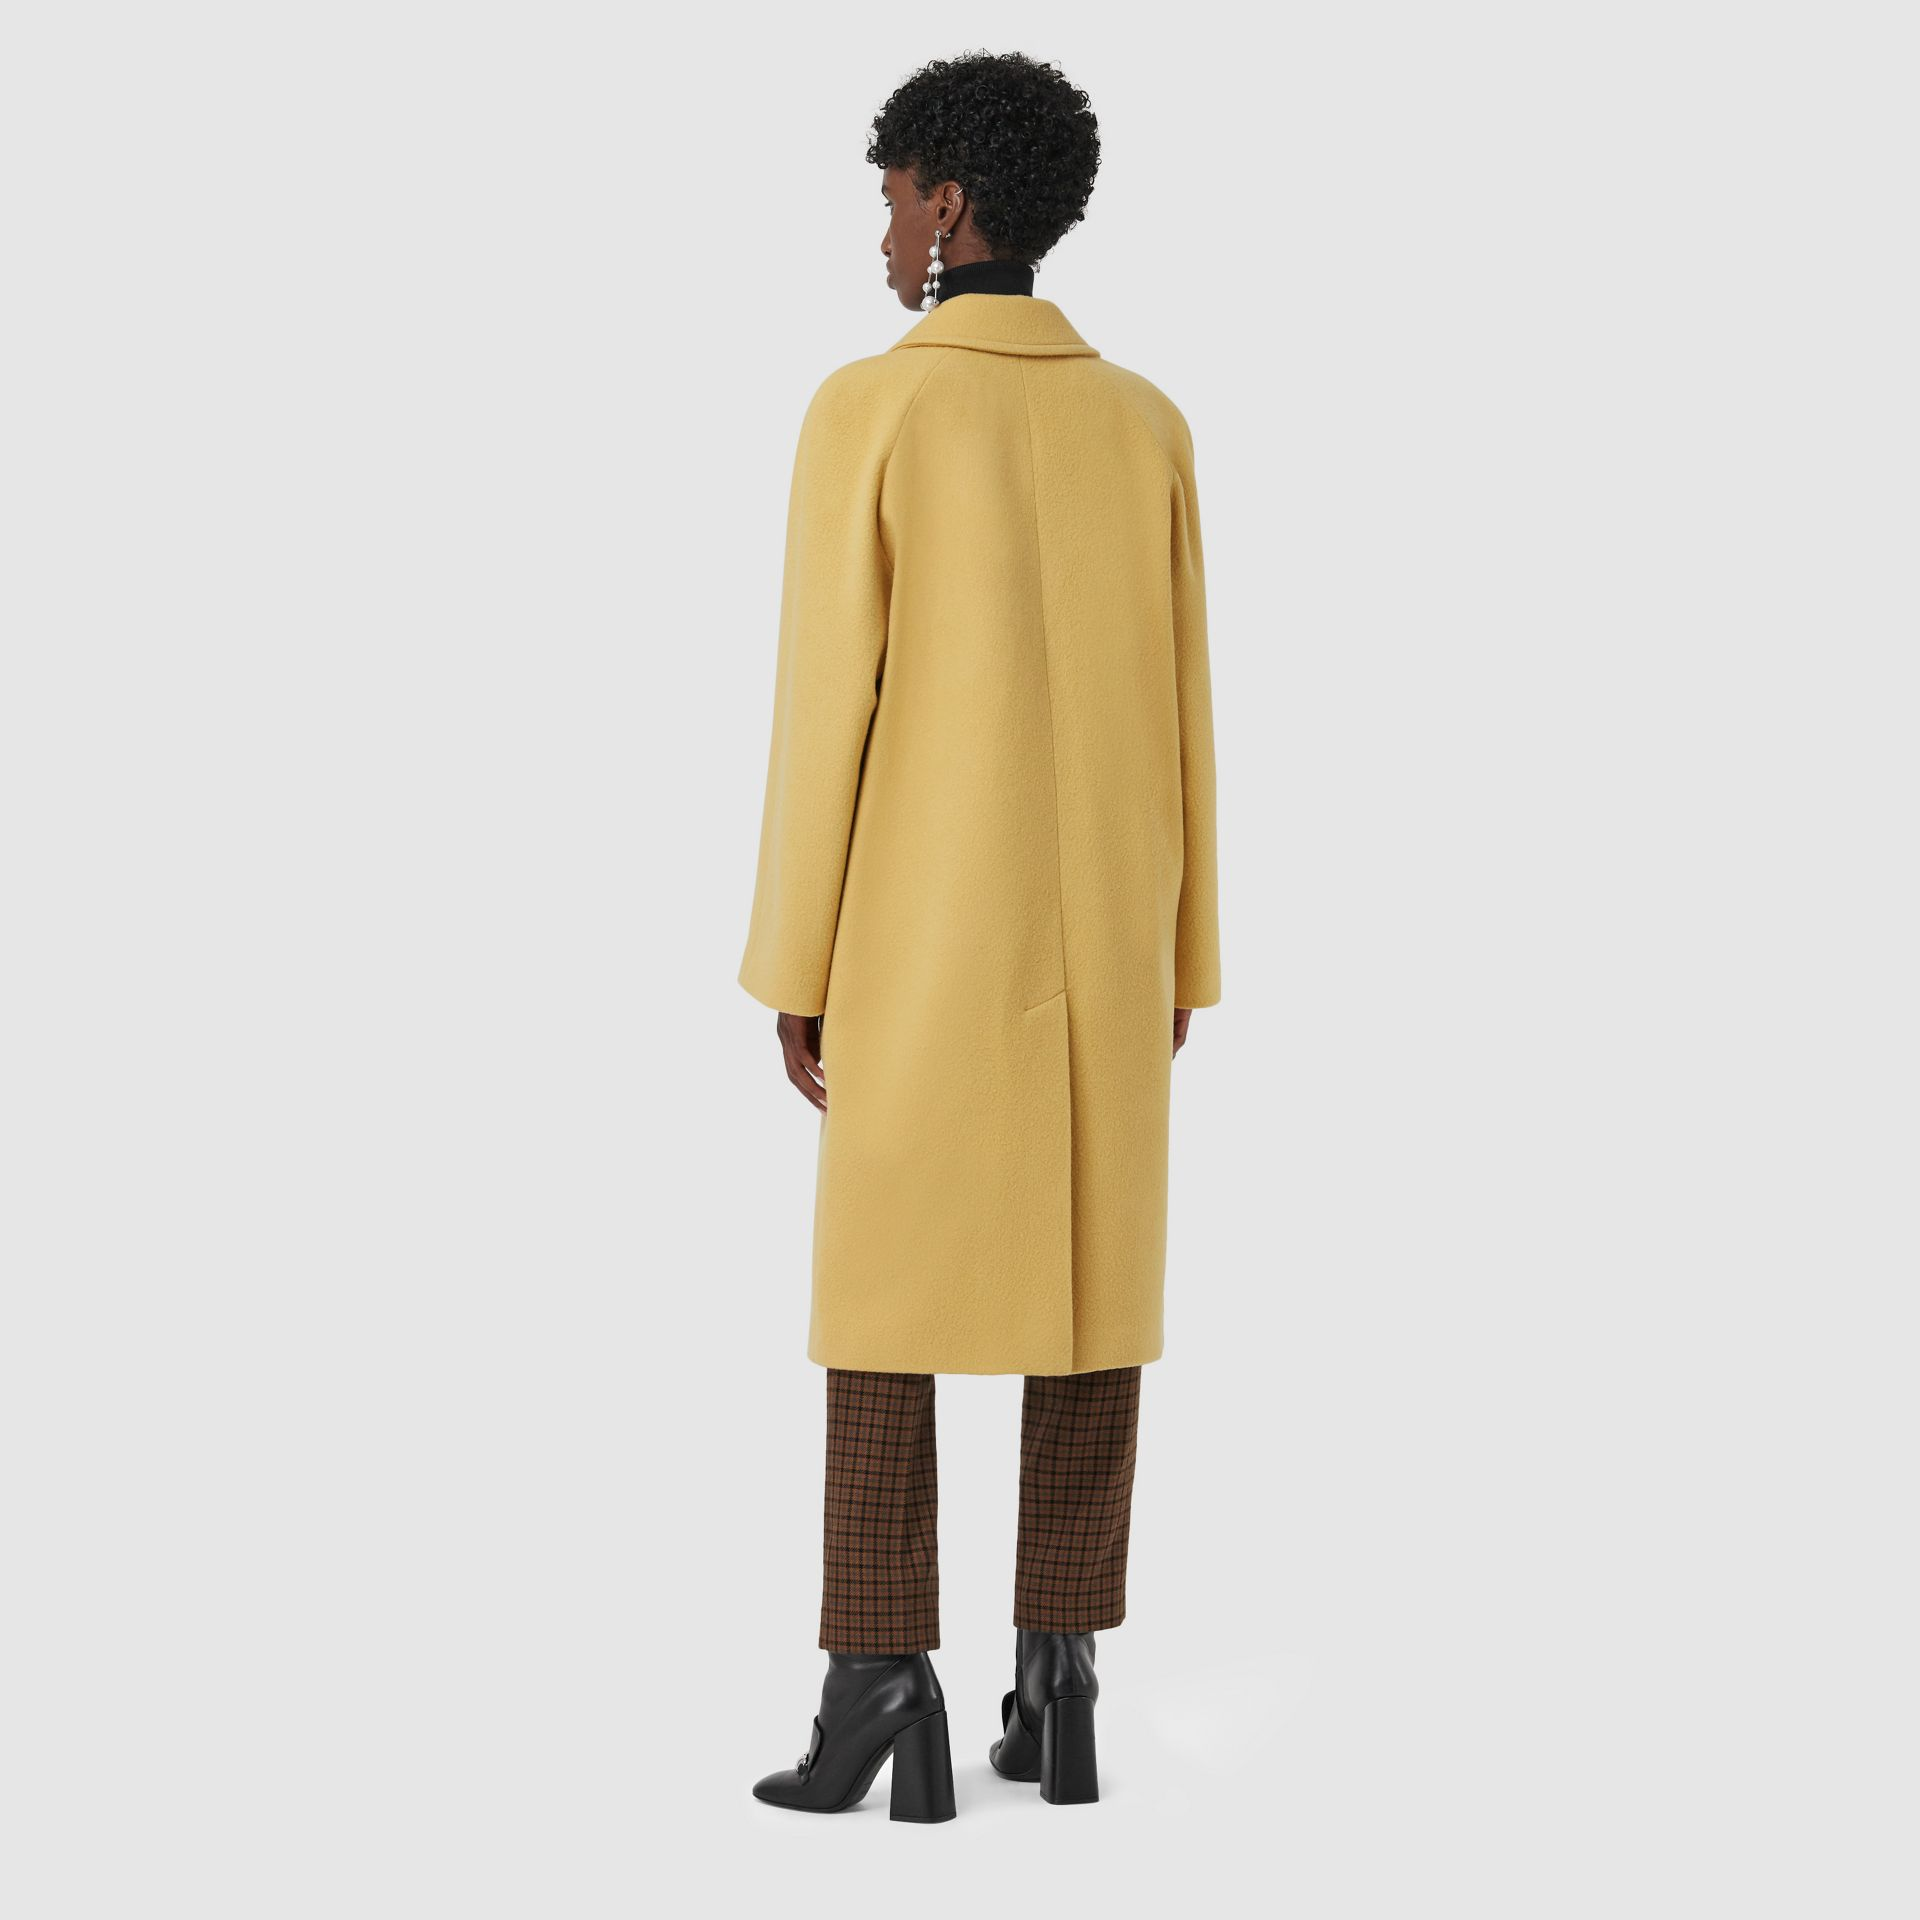 Wool Blend Tailored Coat in Camomile - Women | Burberry Canada - gallery image 2